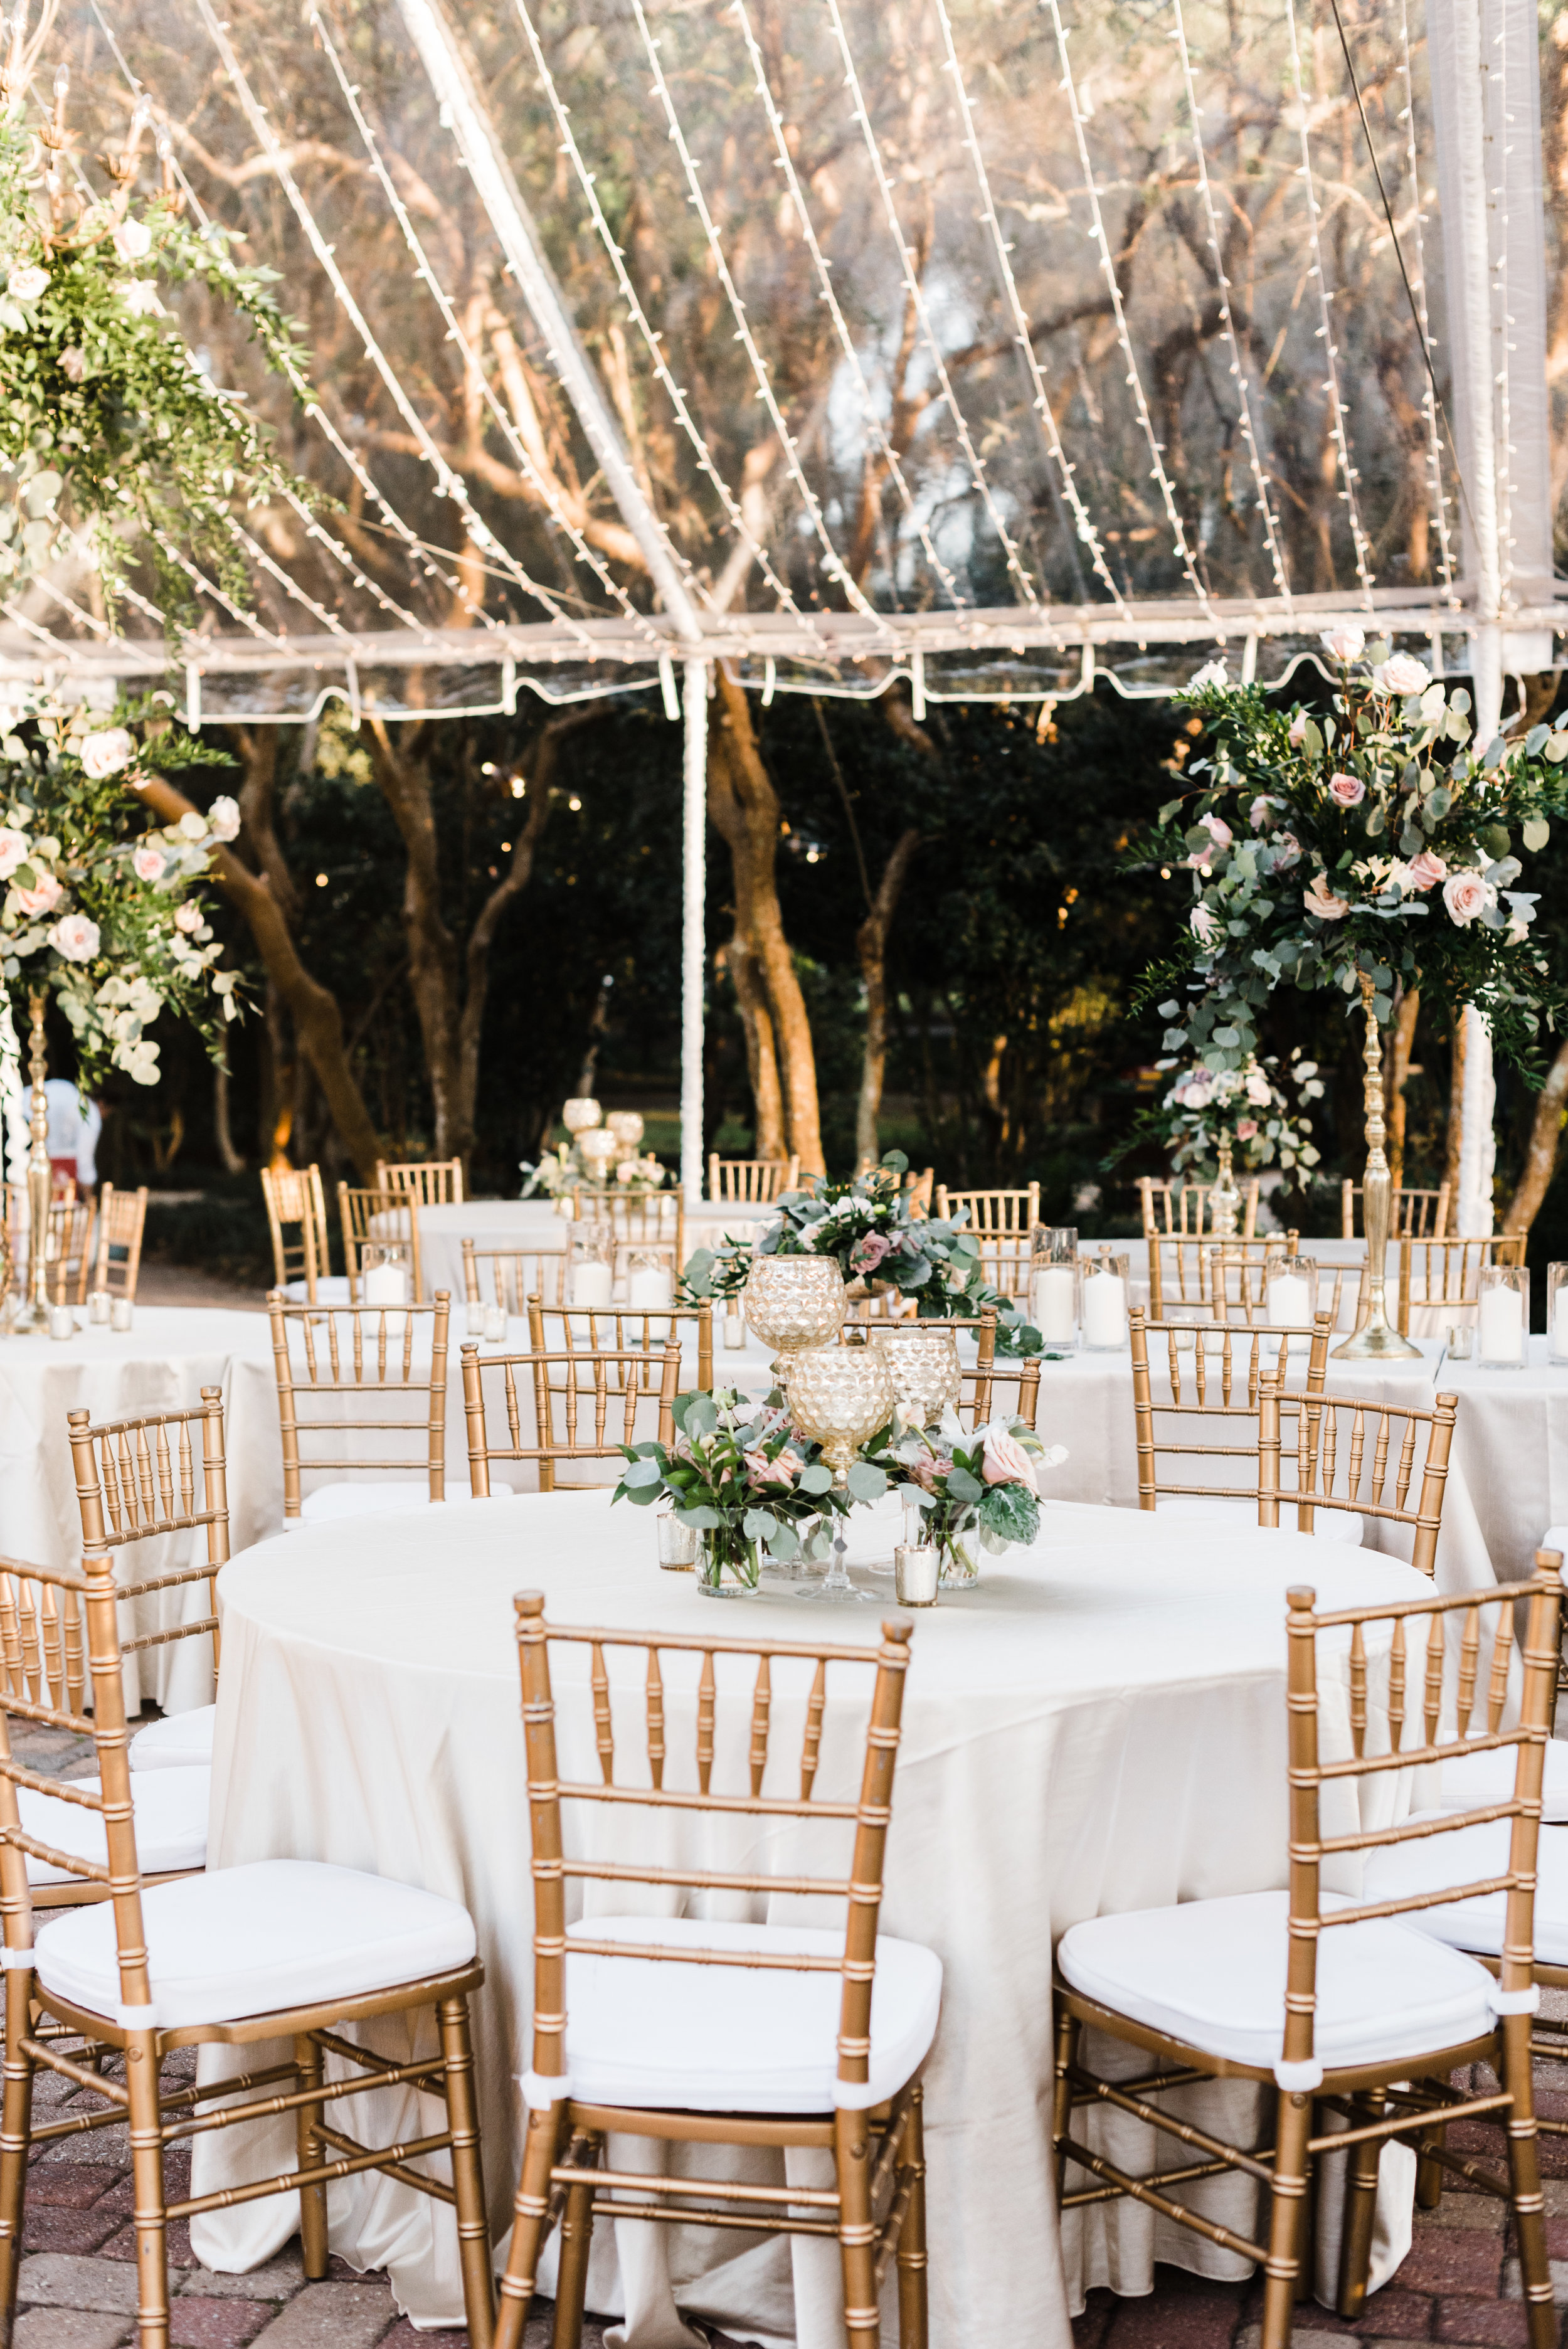 Southern Fete, Southern Wedding, Pink and Green Flower Center Pieces, White and Gold Table Chairs